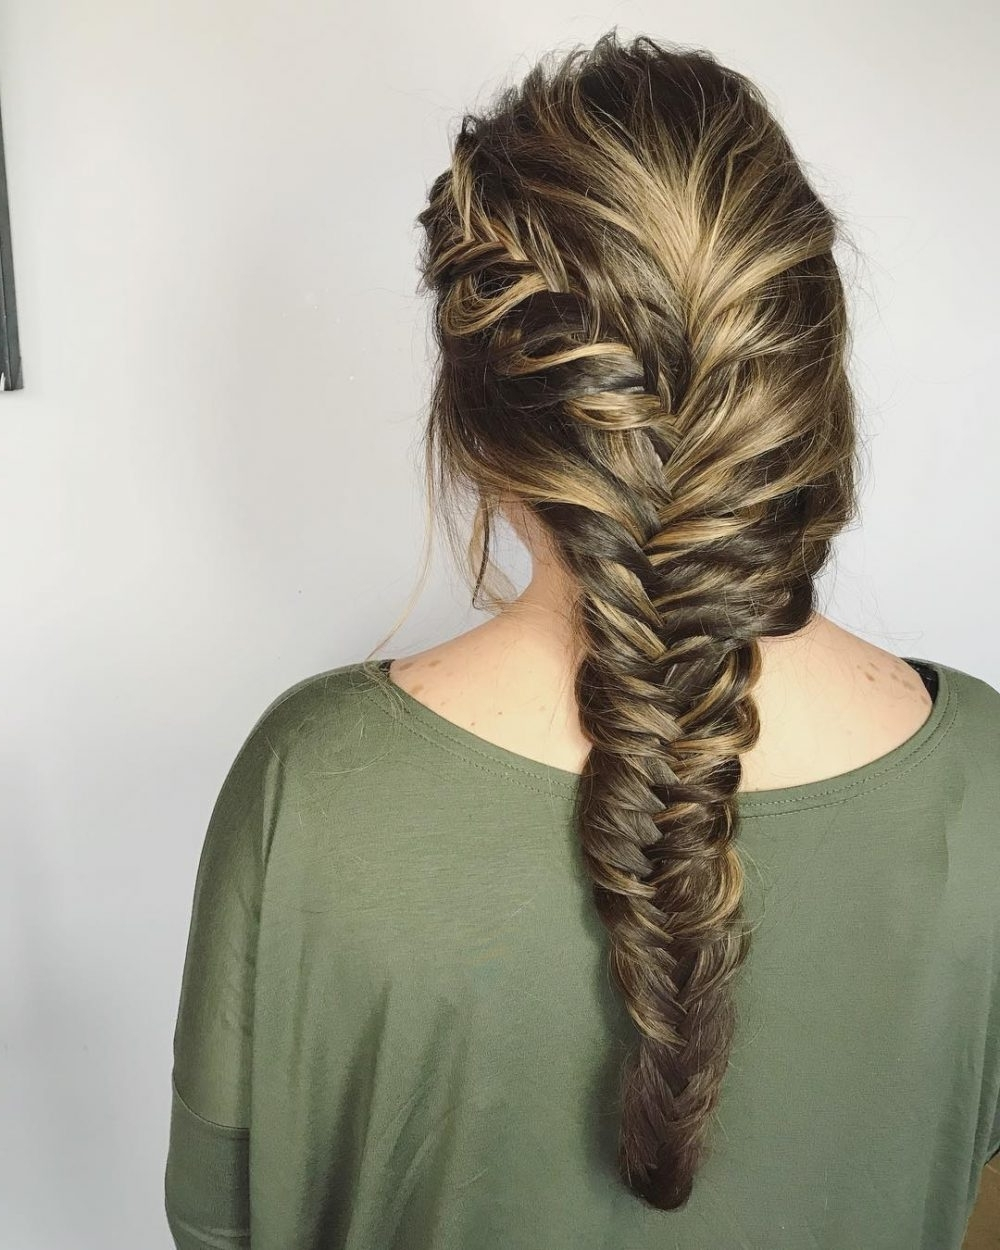 Famous Loosely Braided Ponytail Hairstyles Intended For 38 Cute Prom Hairstyles Guaranteed To Turn Heads (View 10 of 20)